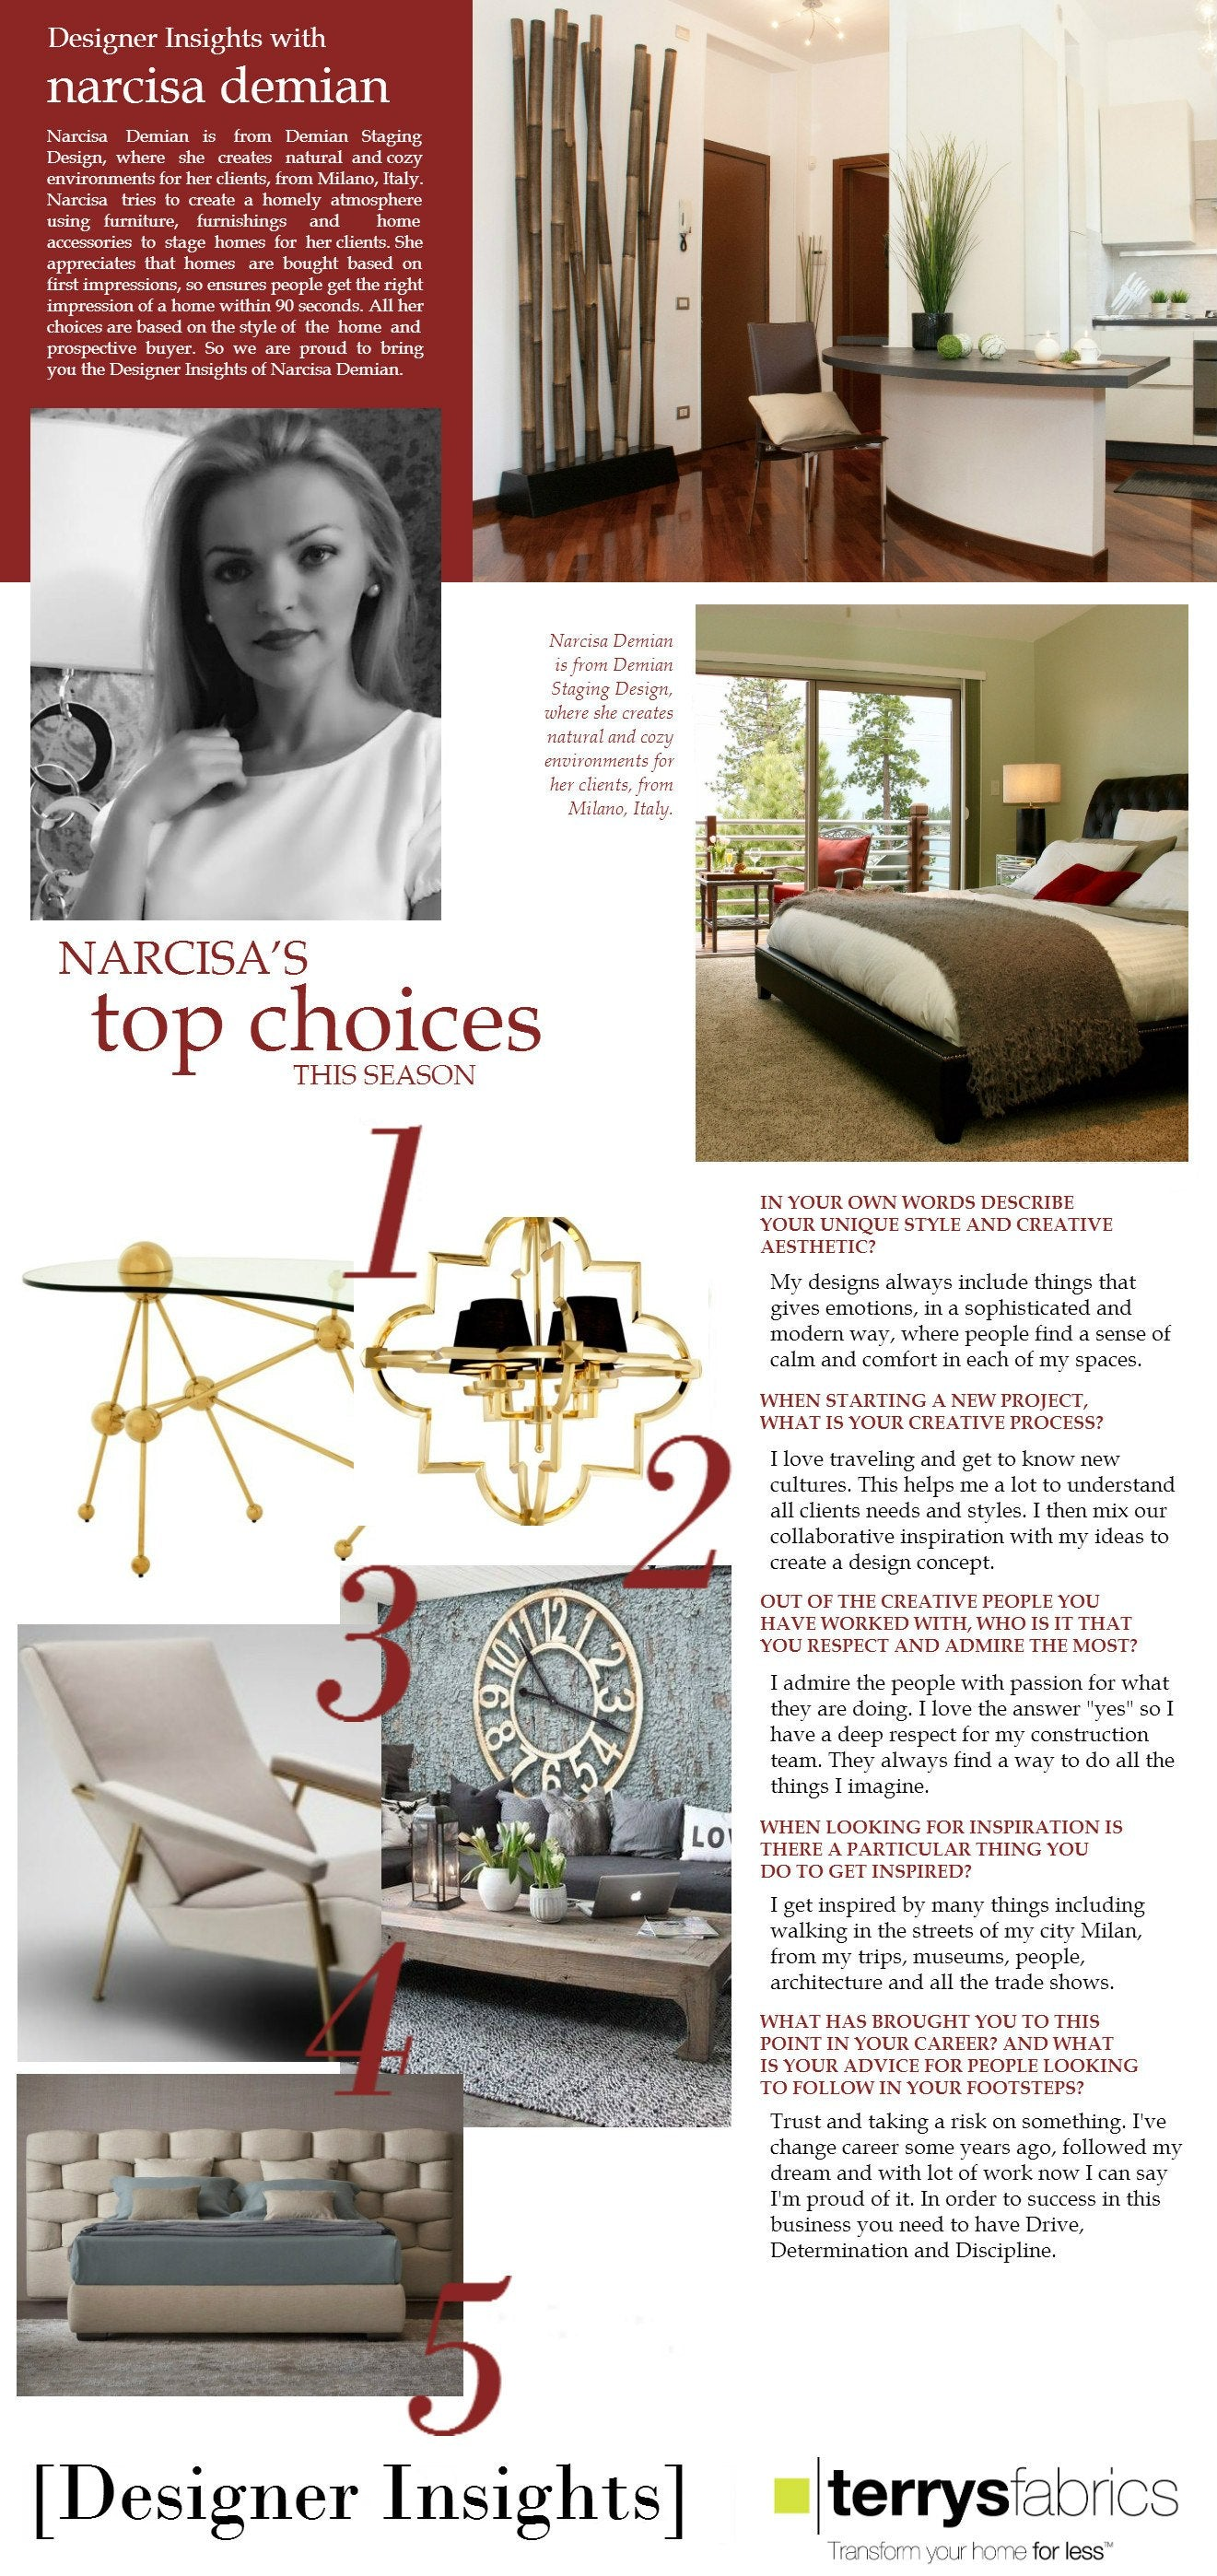 Designer Insights - Narcisa Demian